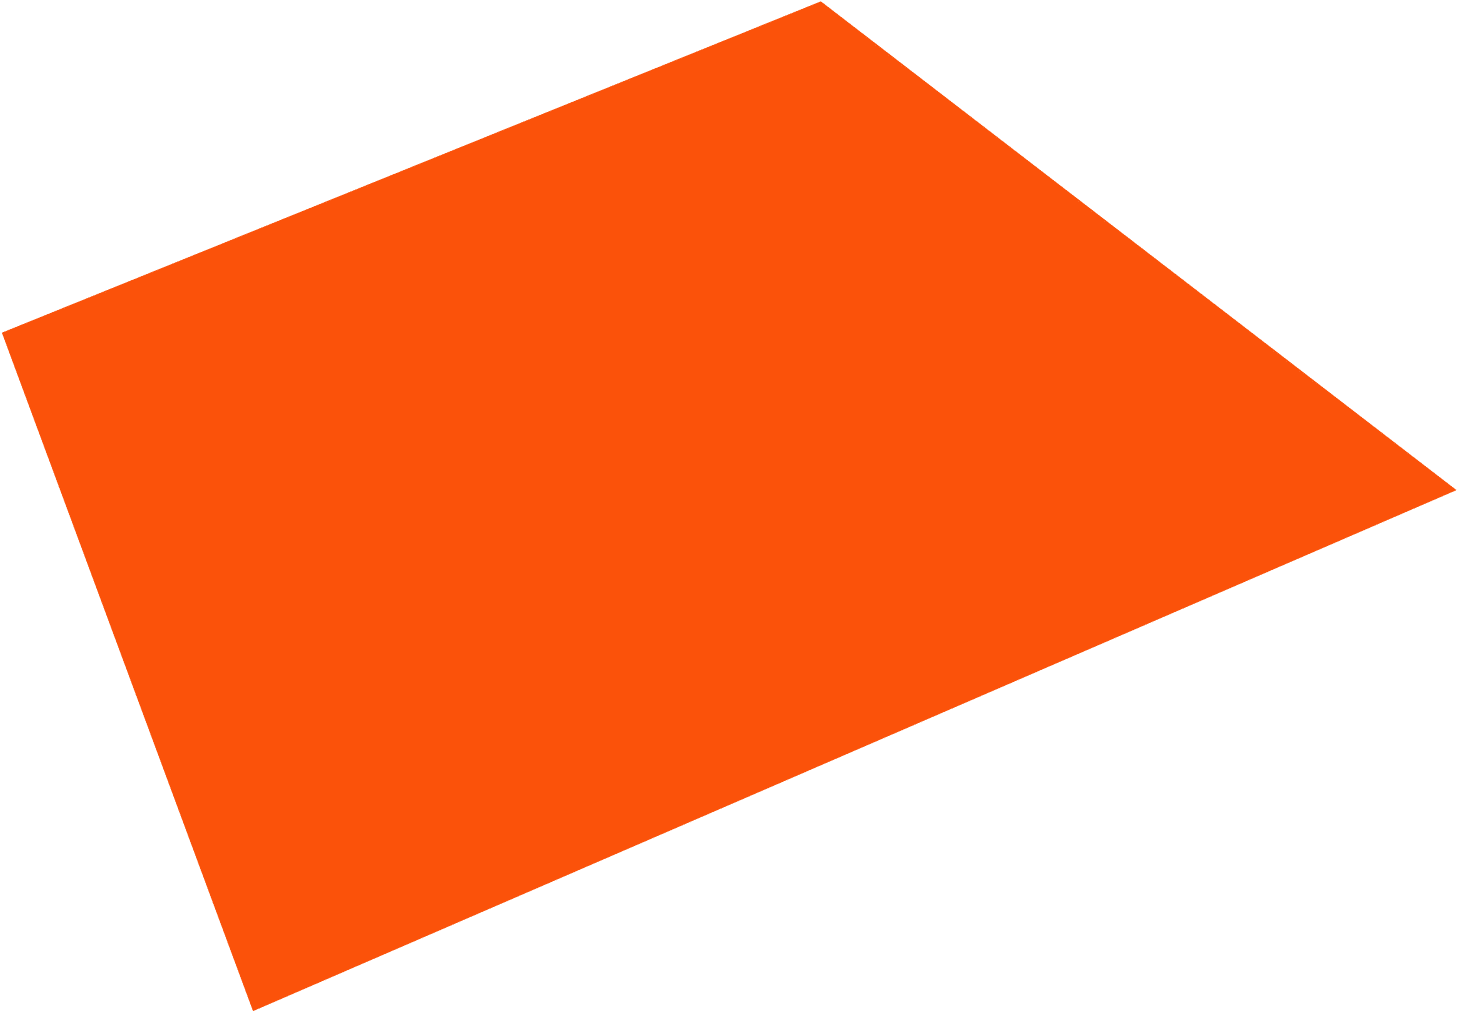 orange-shape